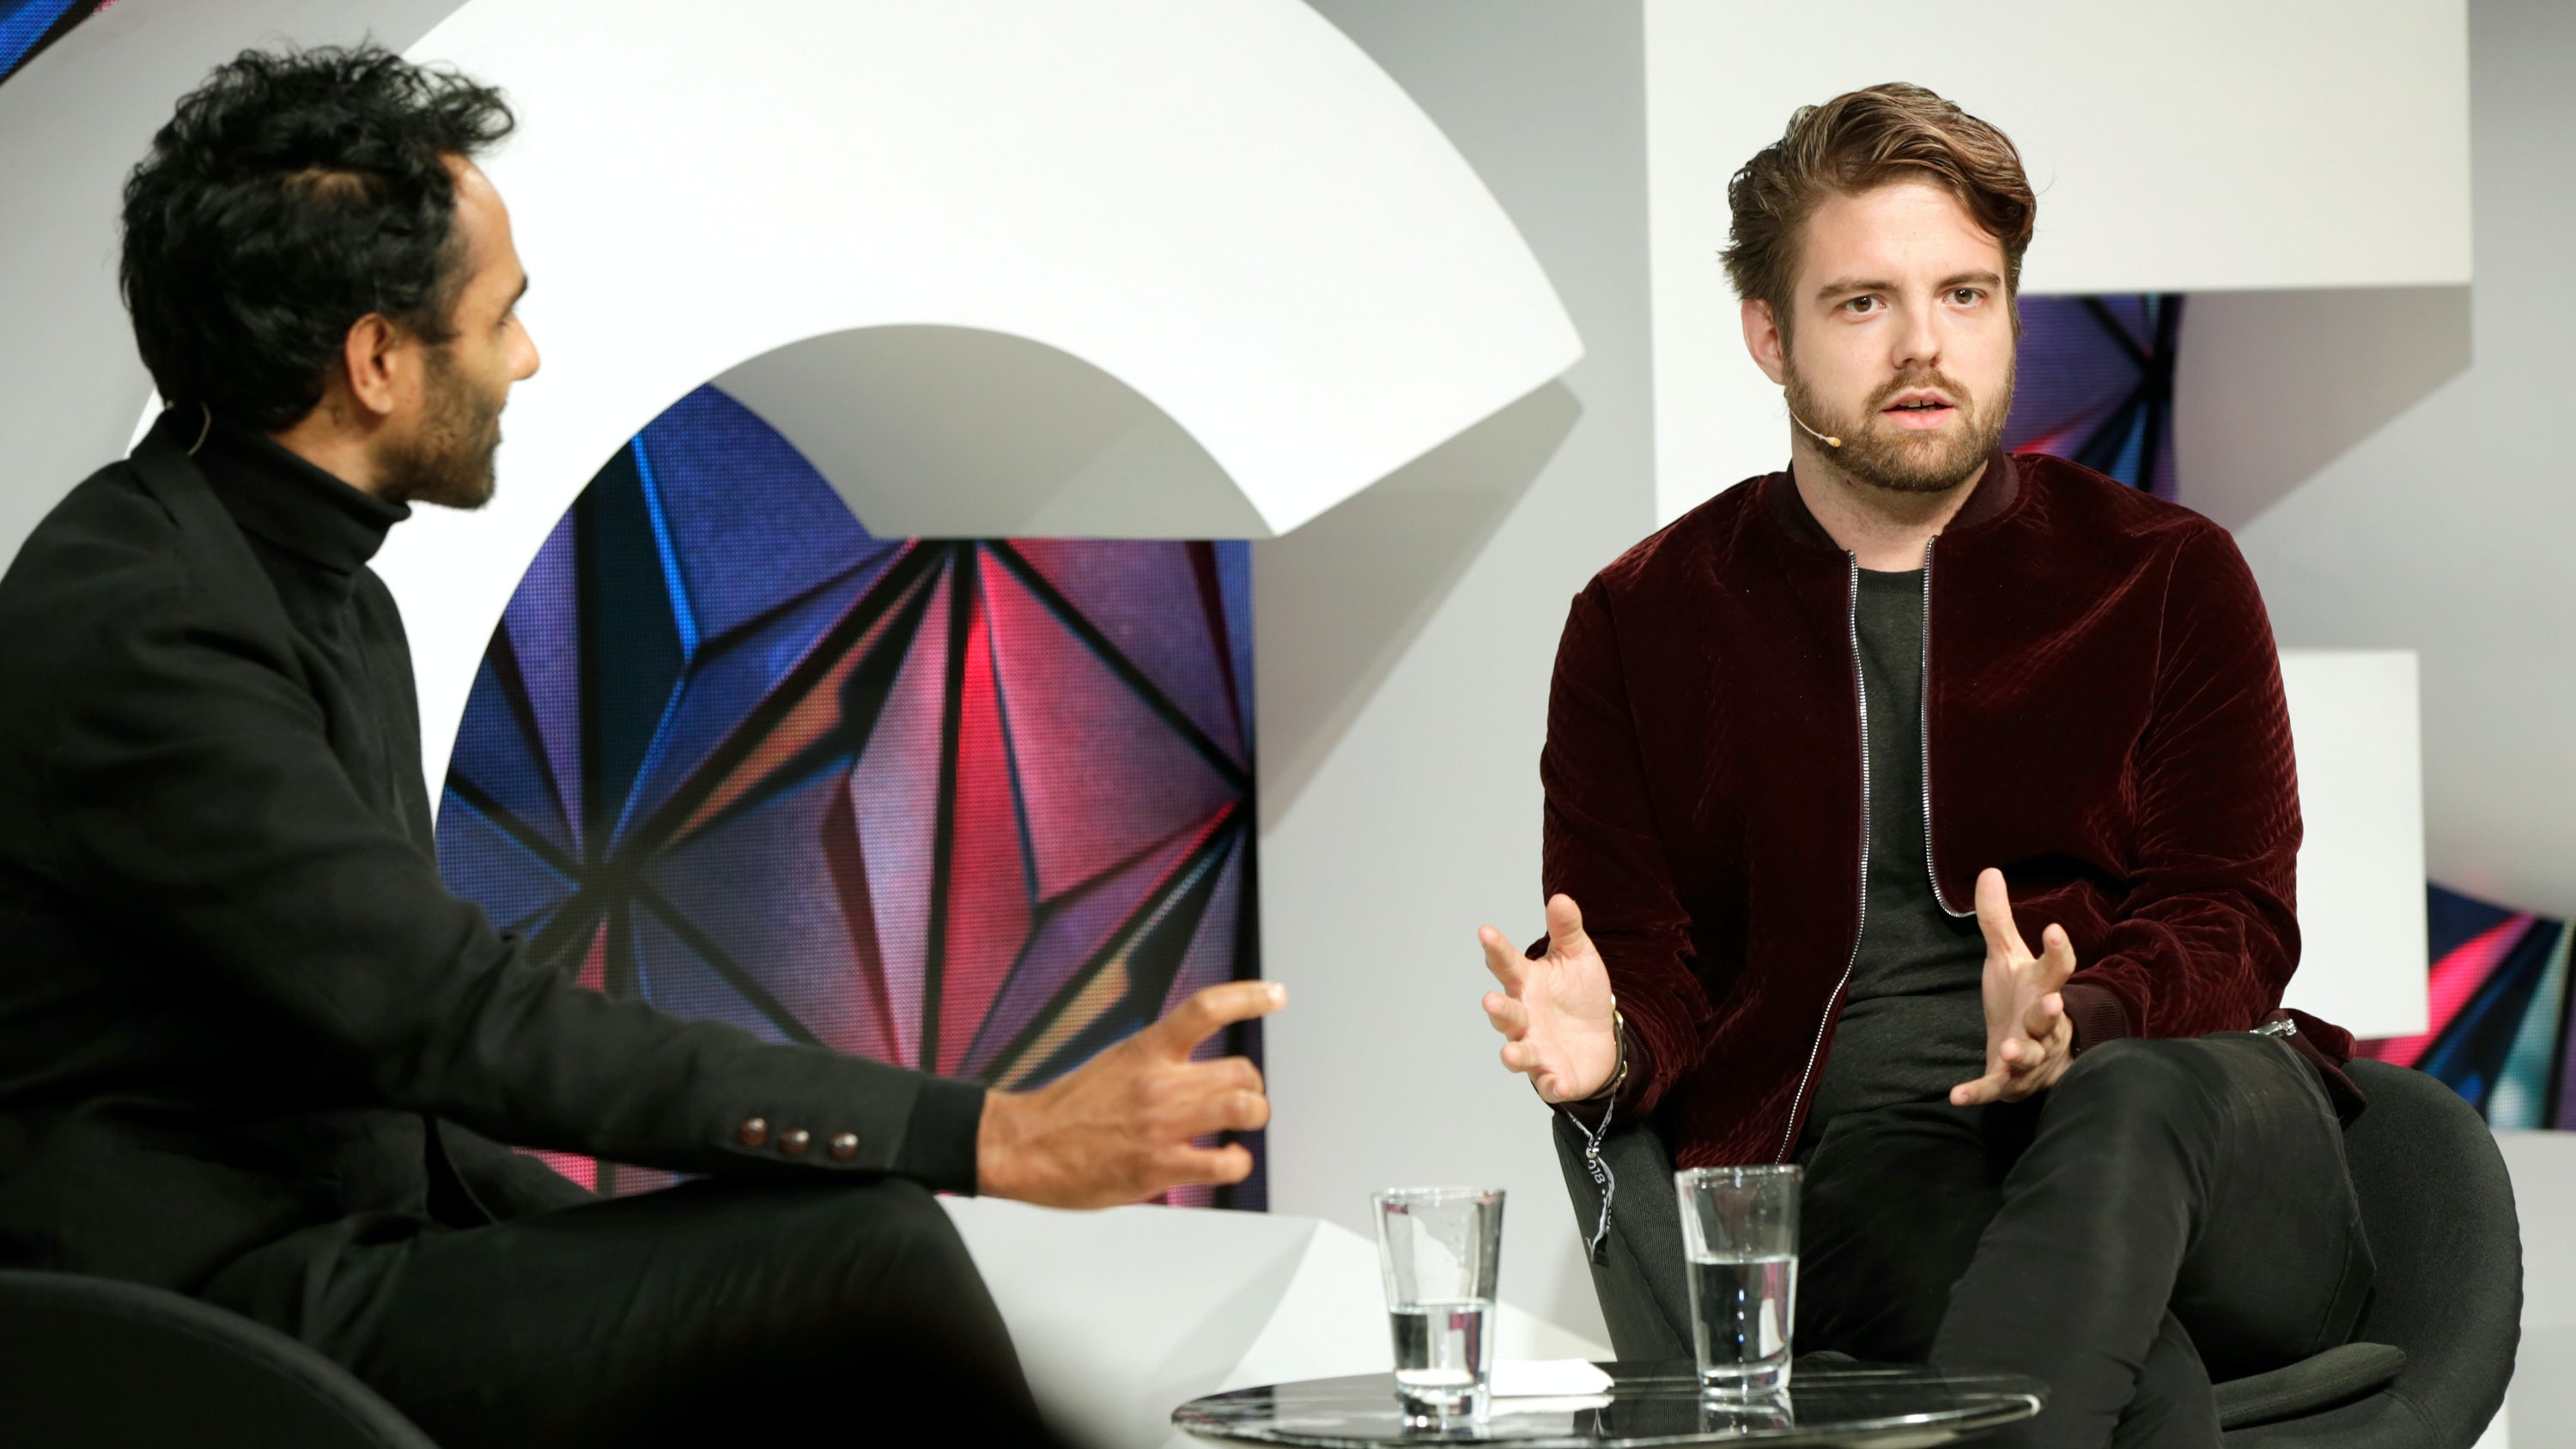 Peter Smith (Right) in conversation with Rohan Silva | Source: Getty Images for The Business of Fashion